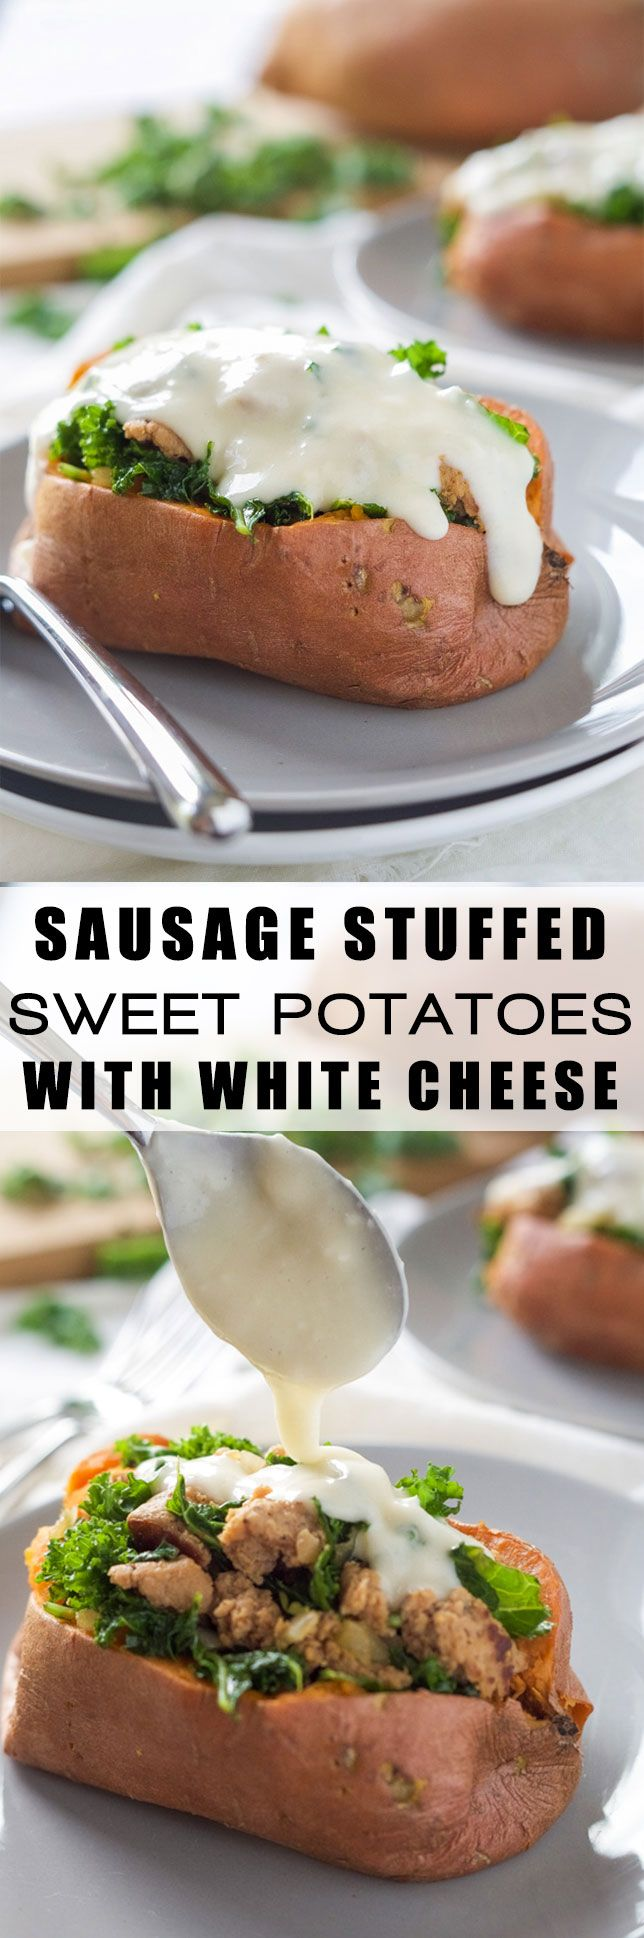 20 Minute Kale And Sausage Stuffed Sweet Potatoes With White Cheese Sauce